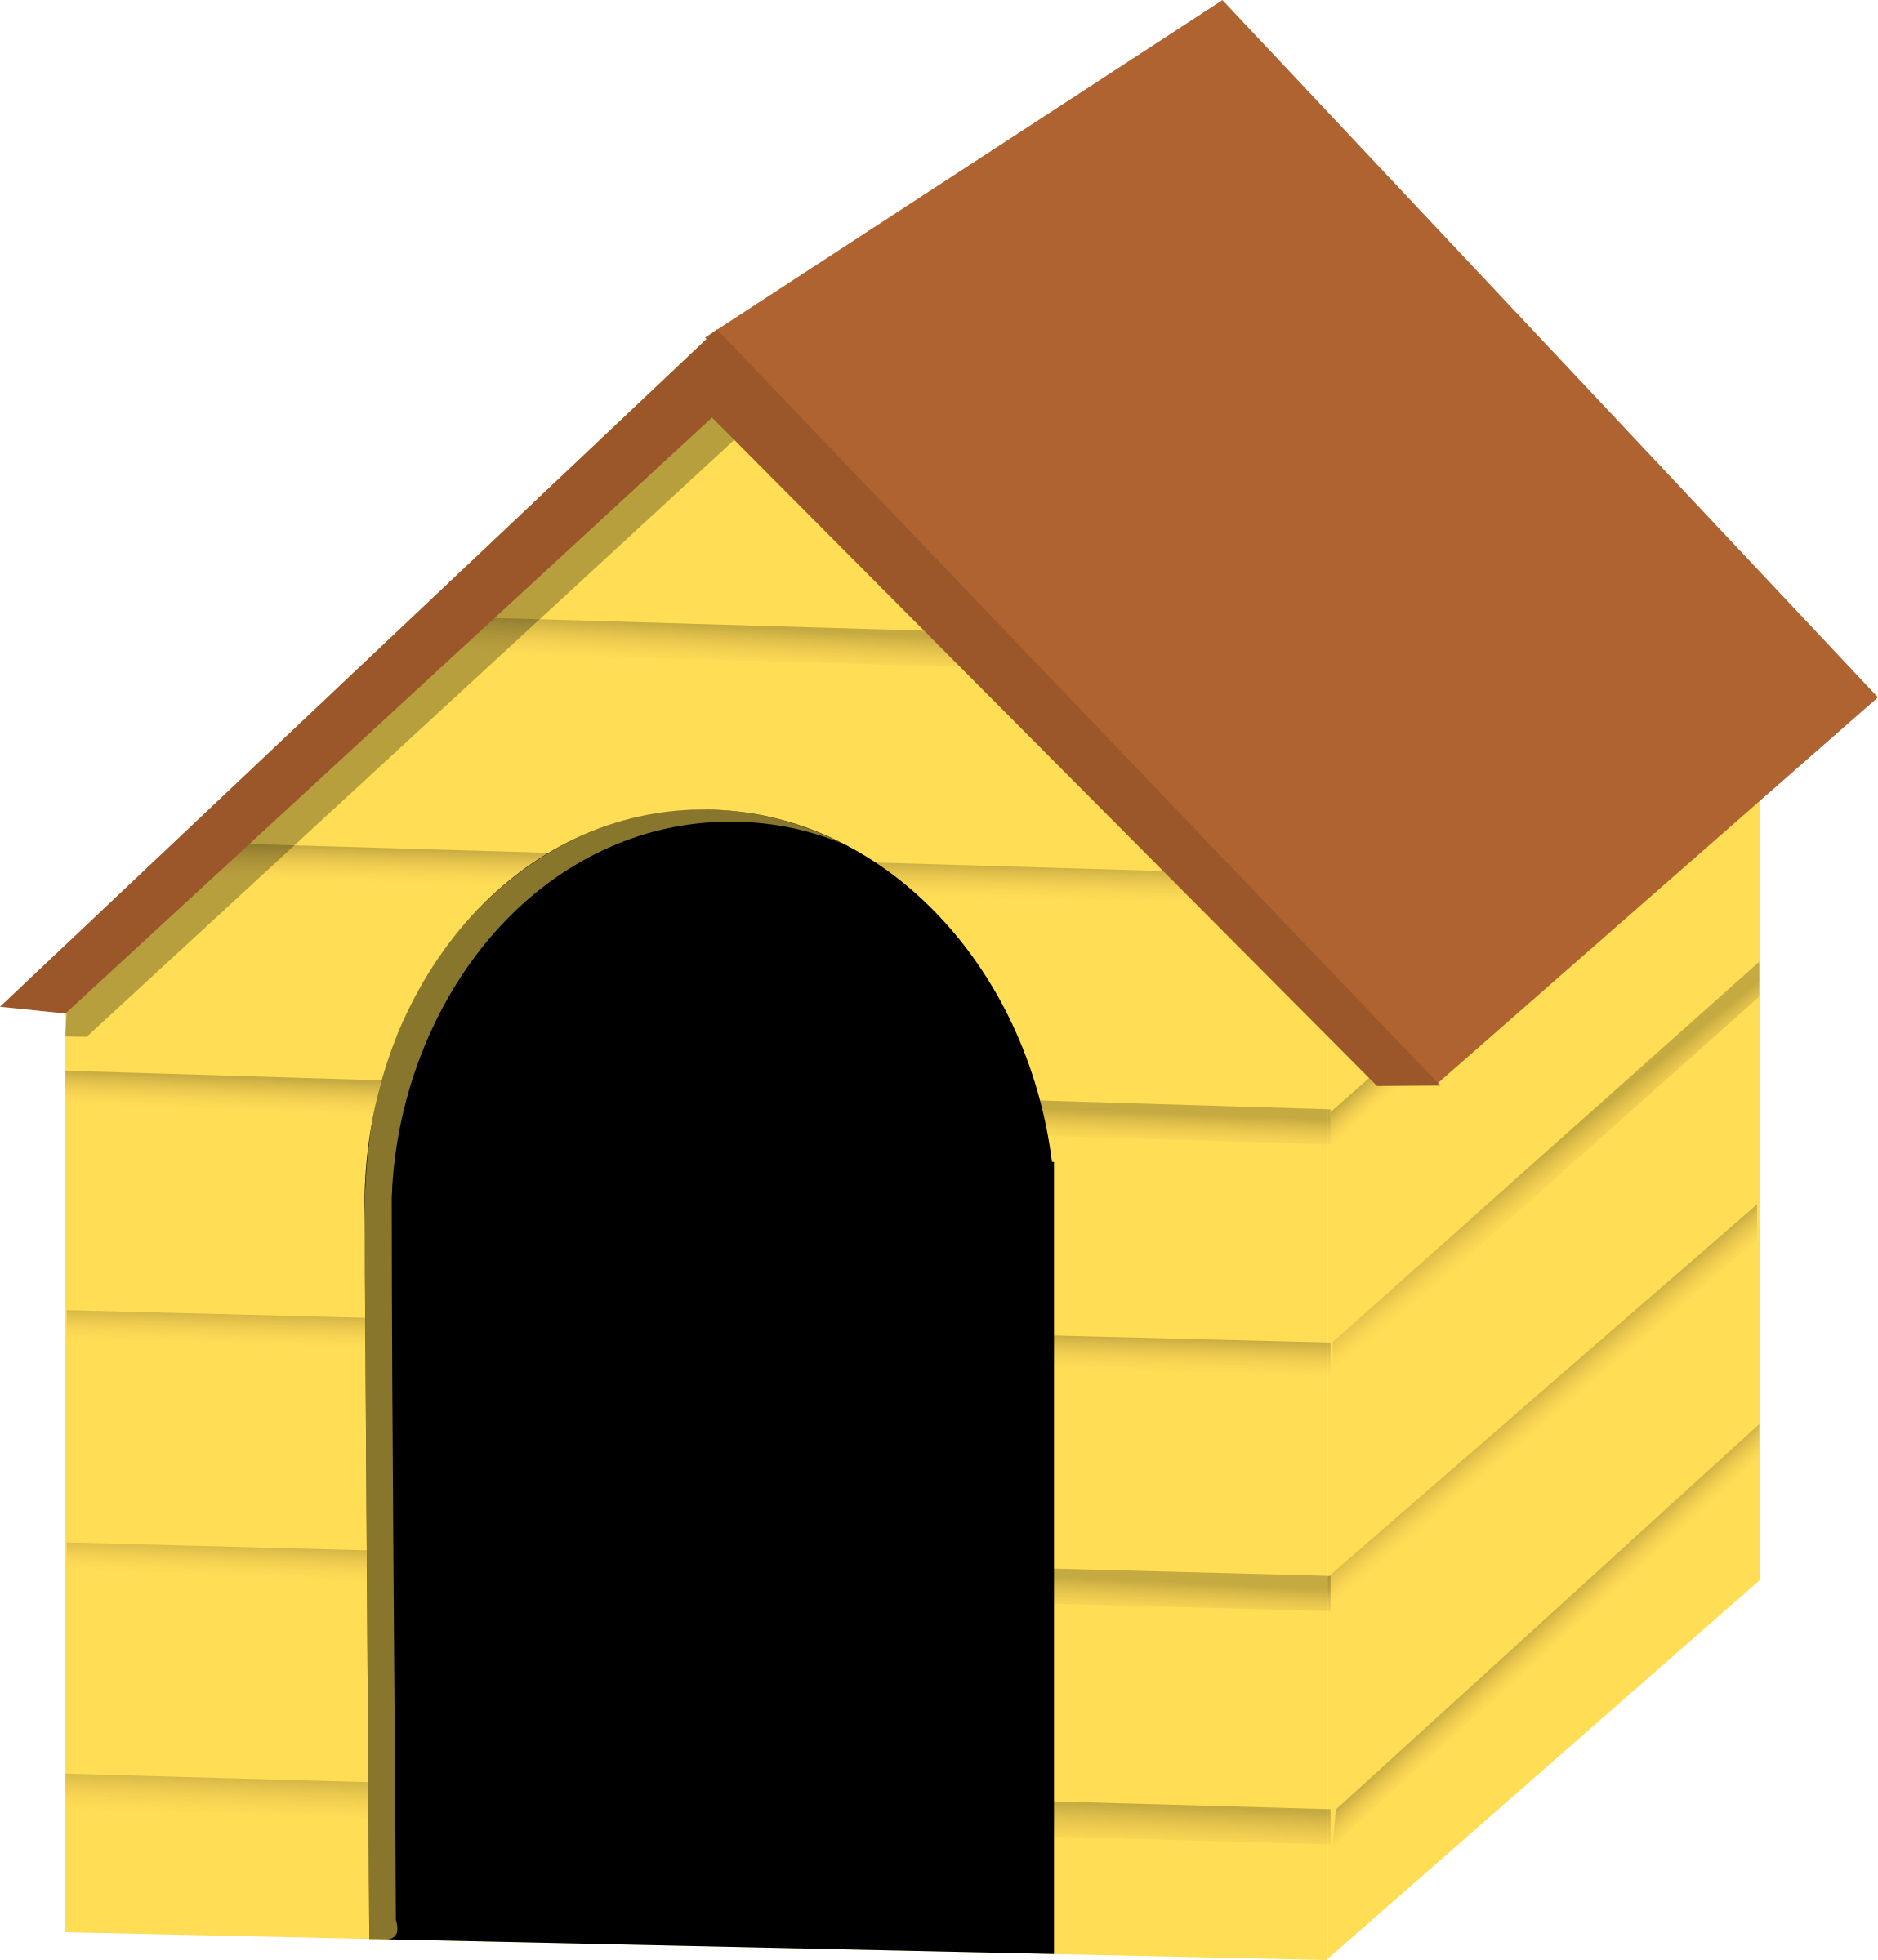 Clipart dog house picture freeuse library Image of Dog House Clipart #10384, Clipart Doghouse - Clipartoons picture freeuse library